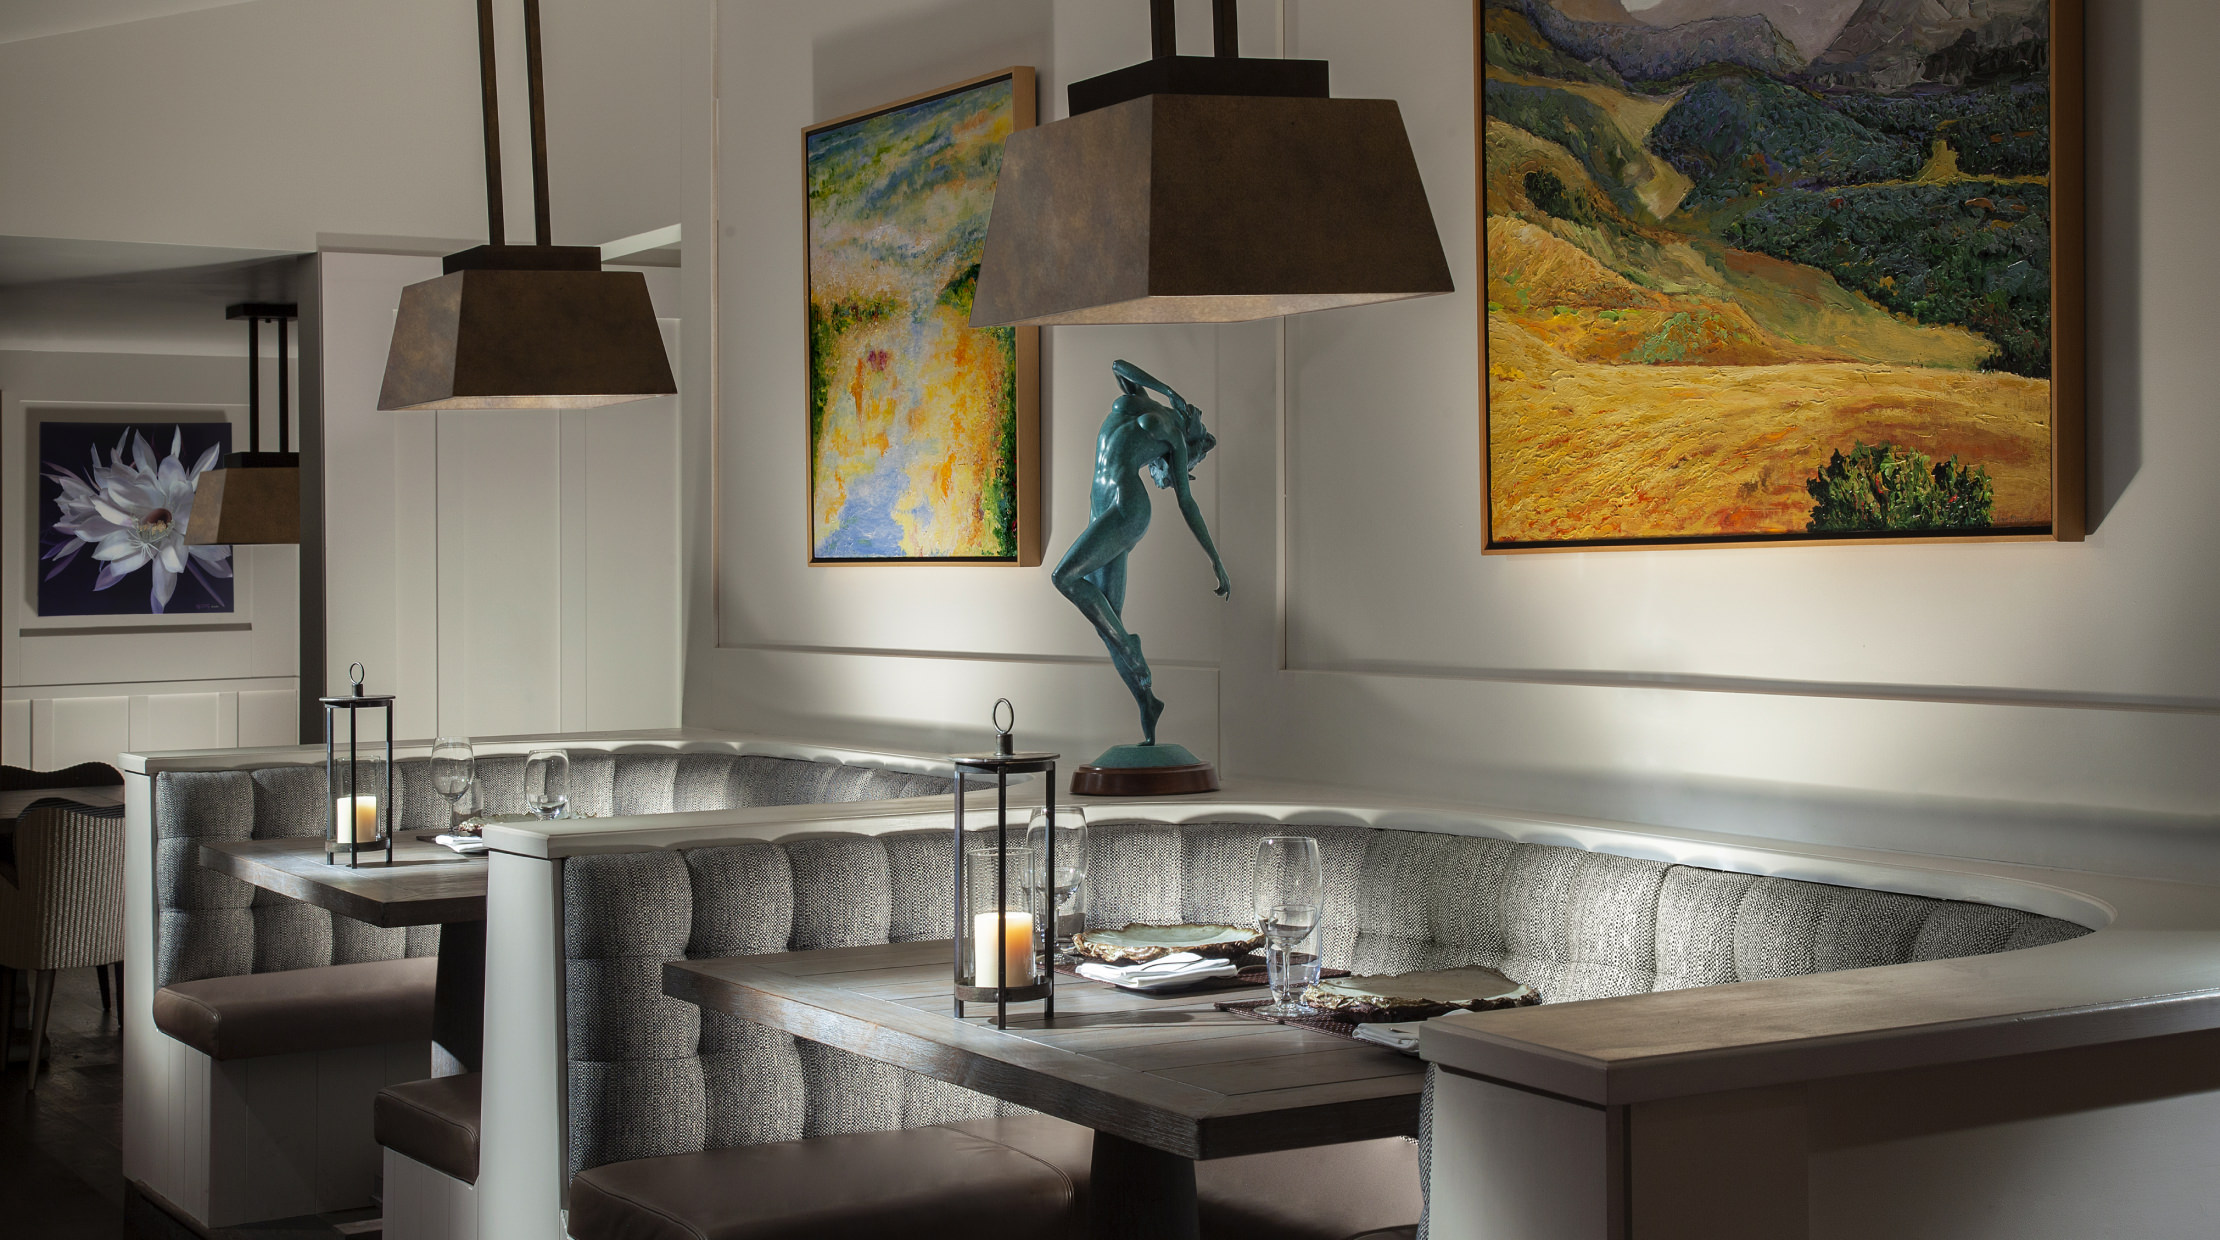 Half circle dining booths with art on the walls